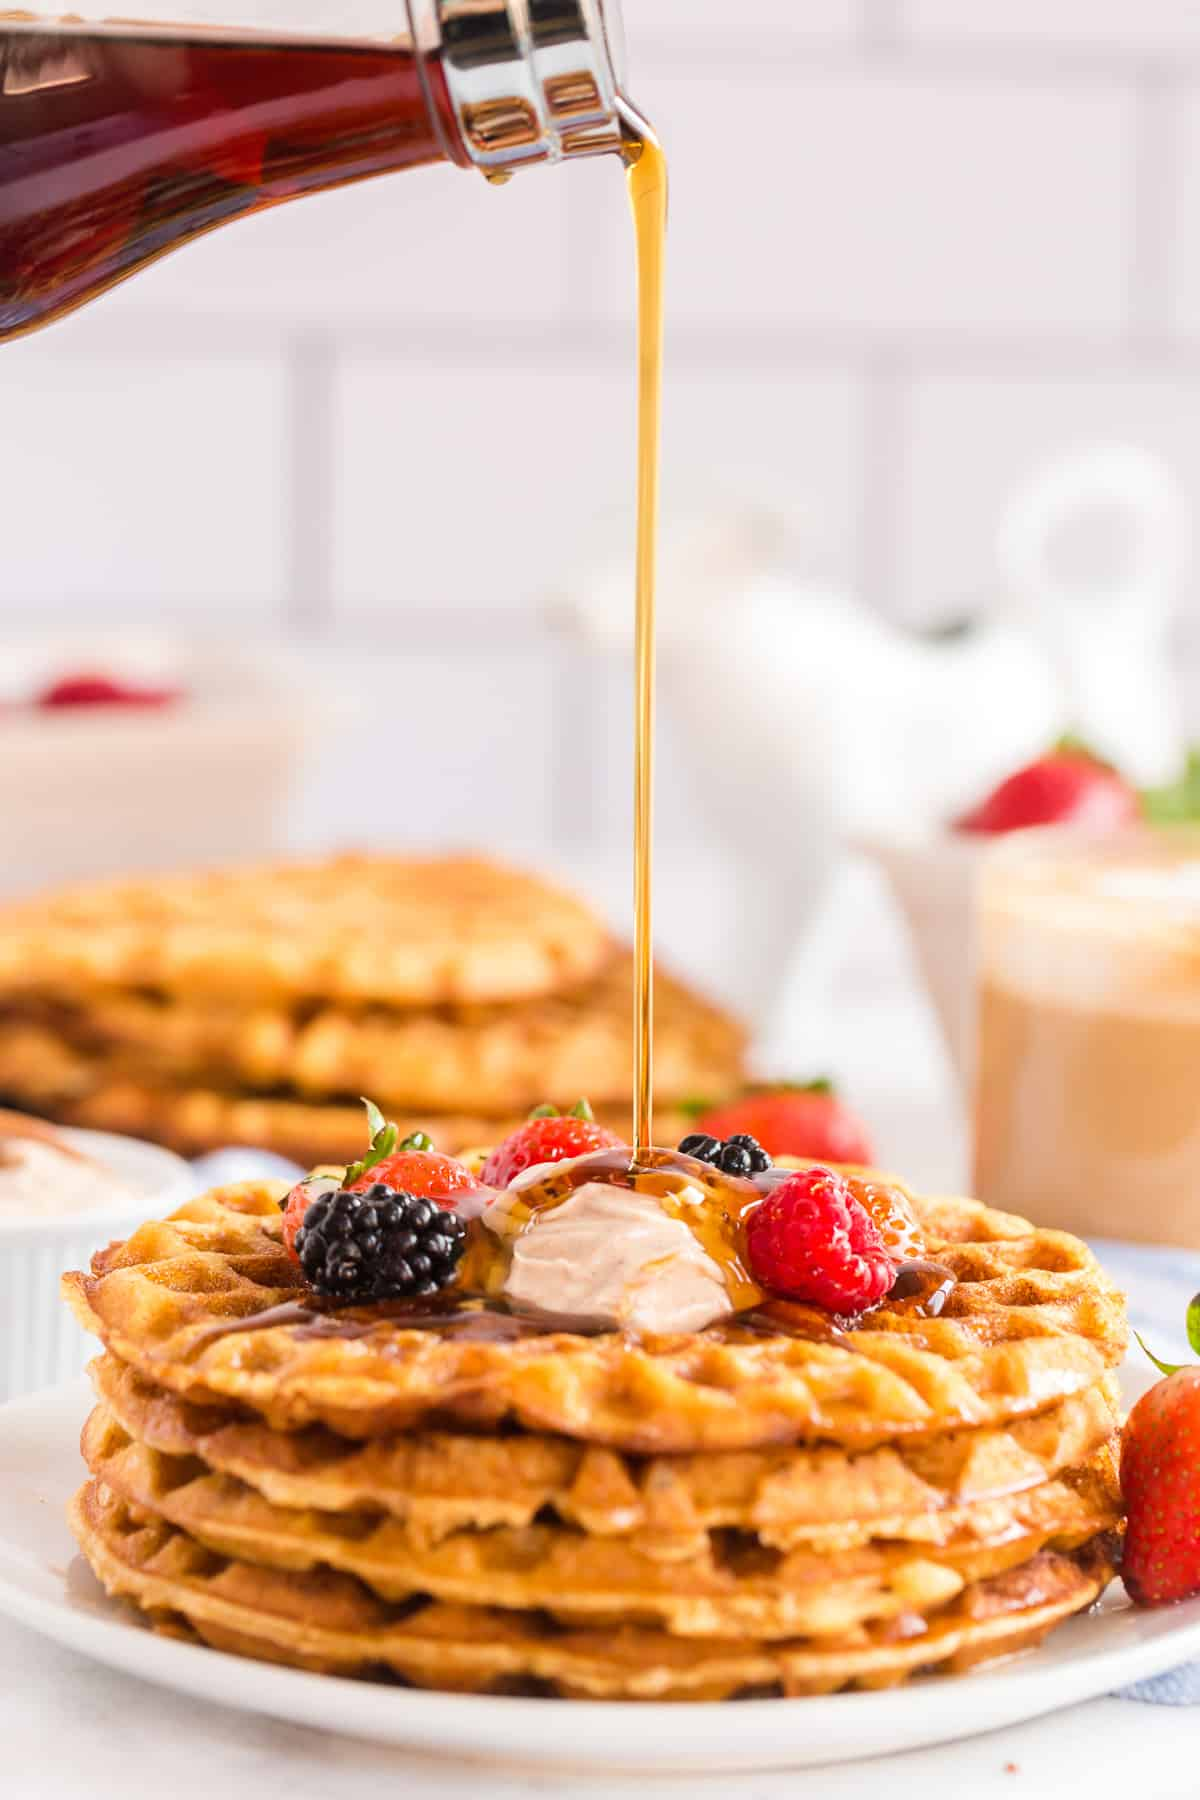 Maple syrup pouring on to a stack of sweet cornbread waffles.